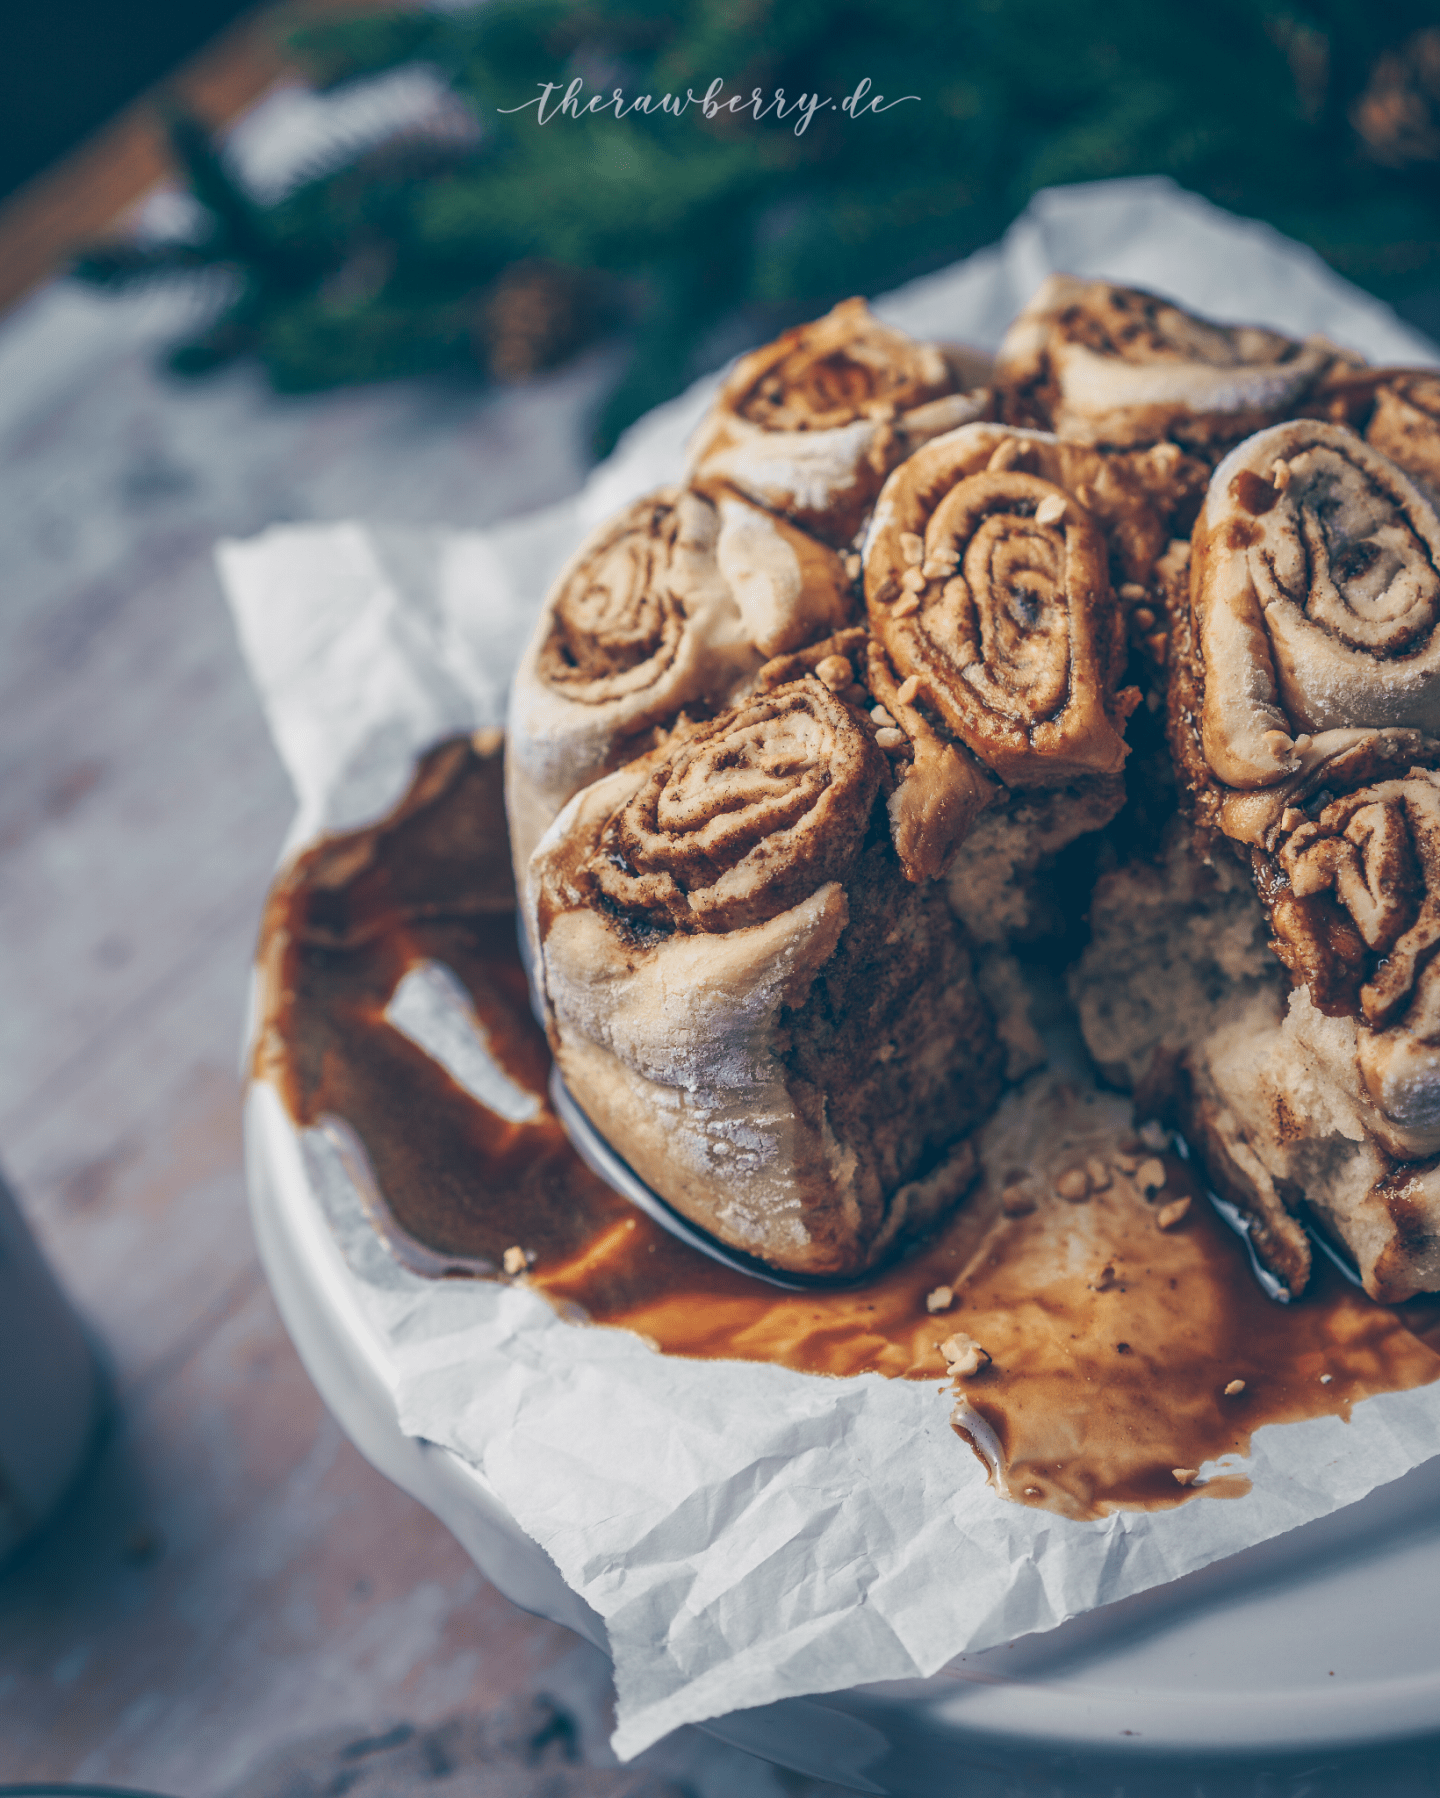 vegan, cinnamon, rolls, healthy, vegan, coconut sugar, baking, dairy free, recipe, backen, lecker, delicious, gesund, Zimtschnecken, Rezept, laktosefrei, Backen, Kokosblütenzucker